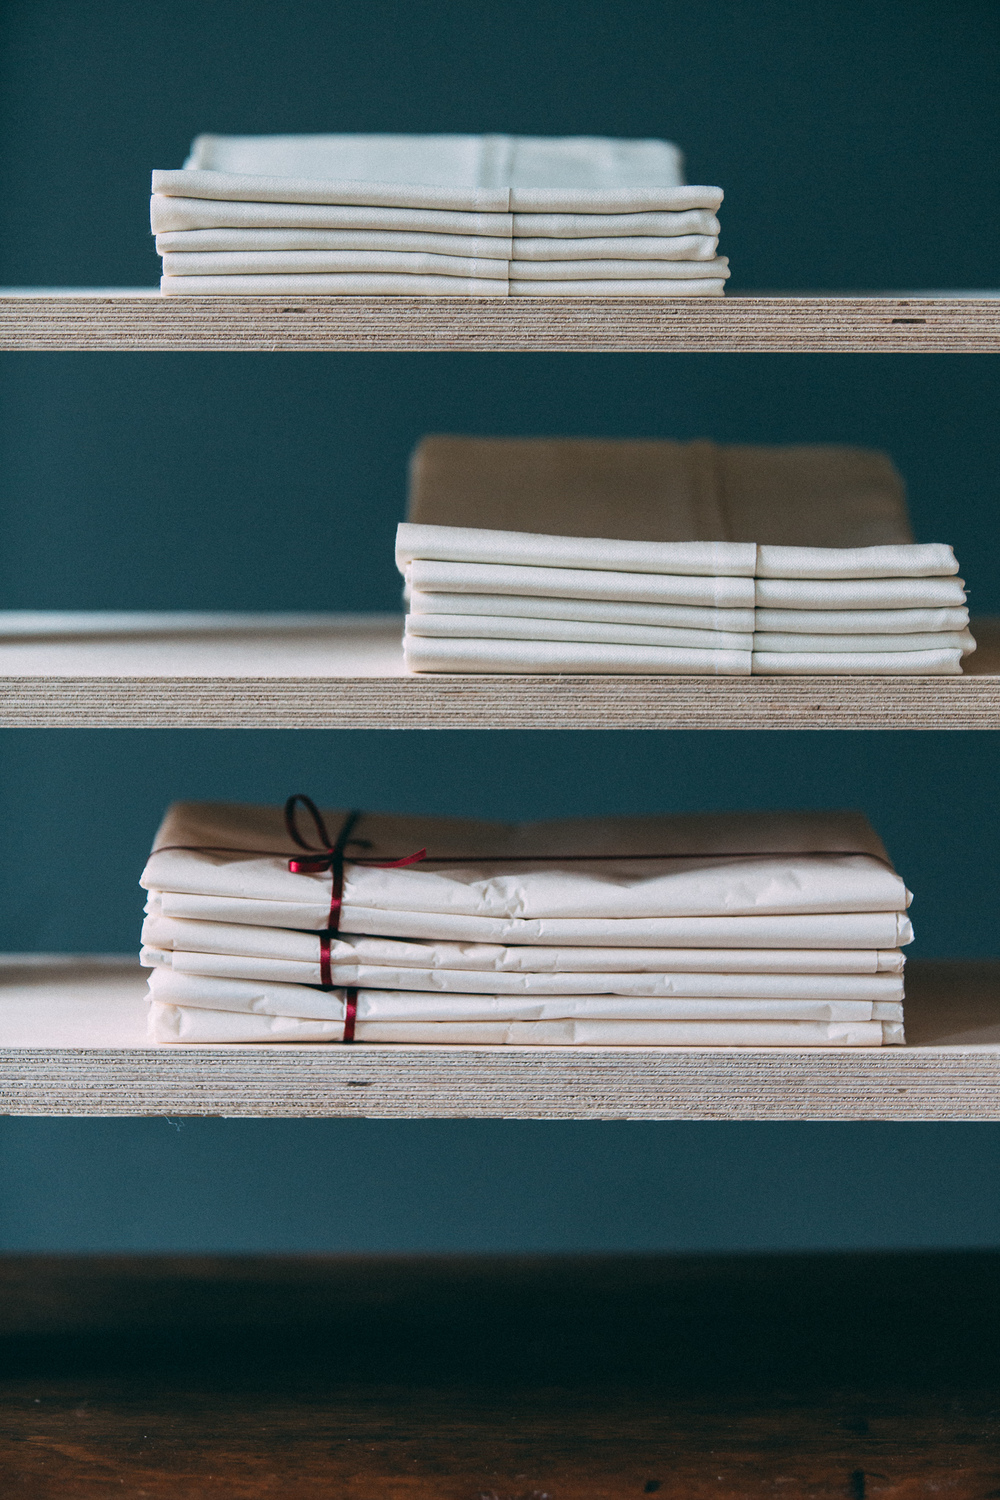 Mulberry silk pillowcases display